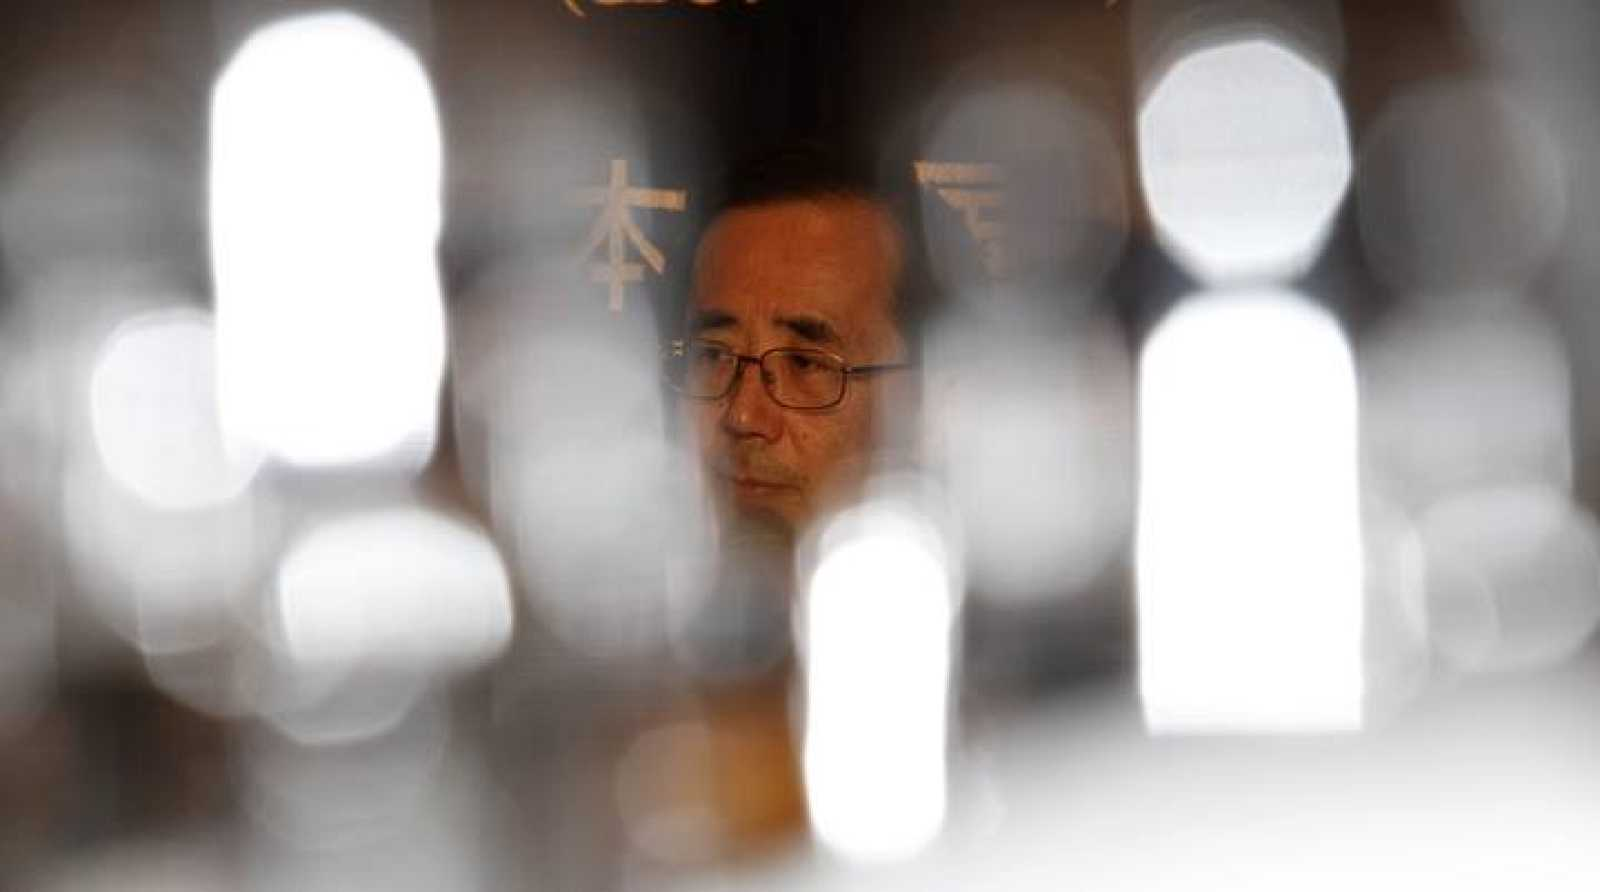 Bank of Japan Governor Masaaki Shirakawa is seen through reflections on glasses during a news conference in Tokyo